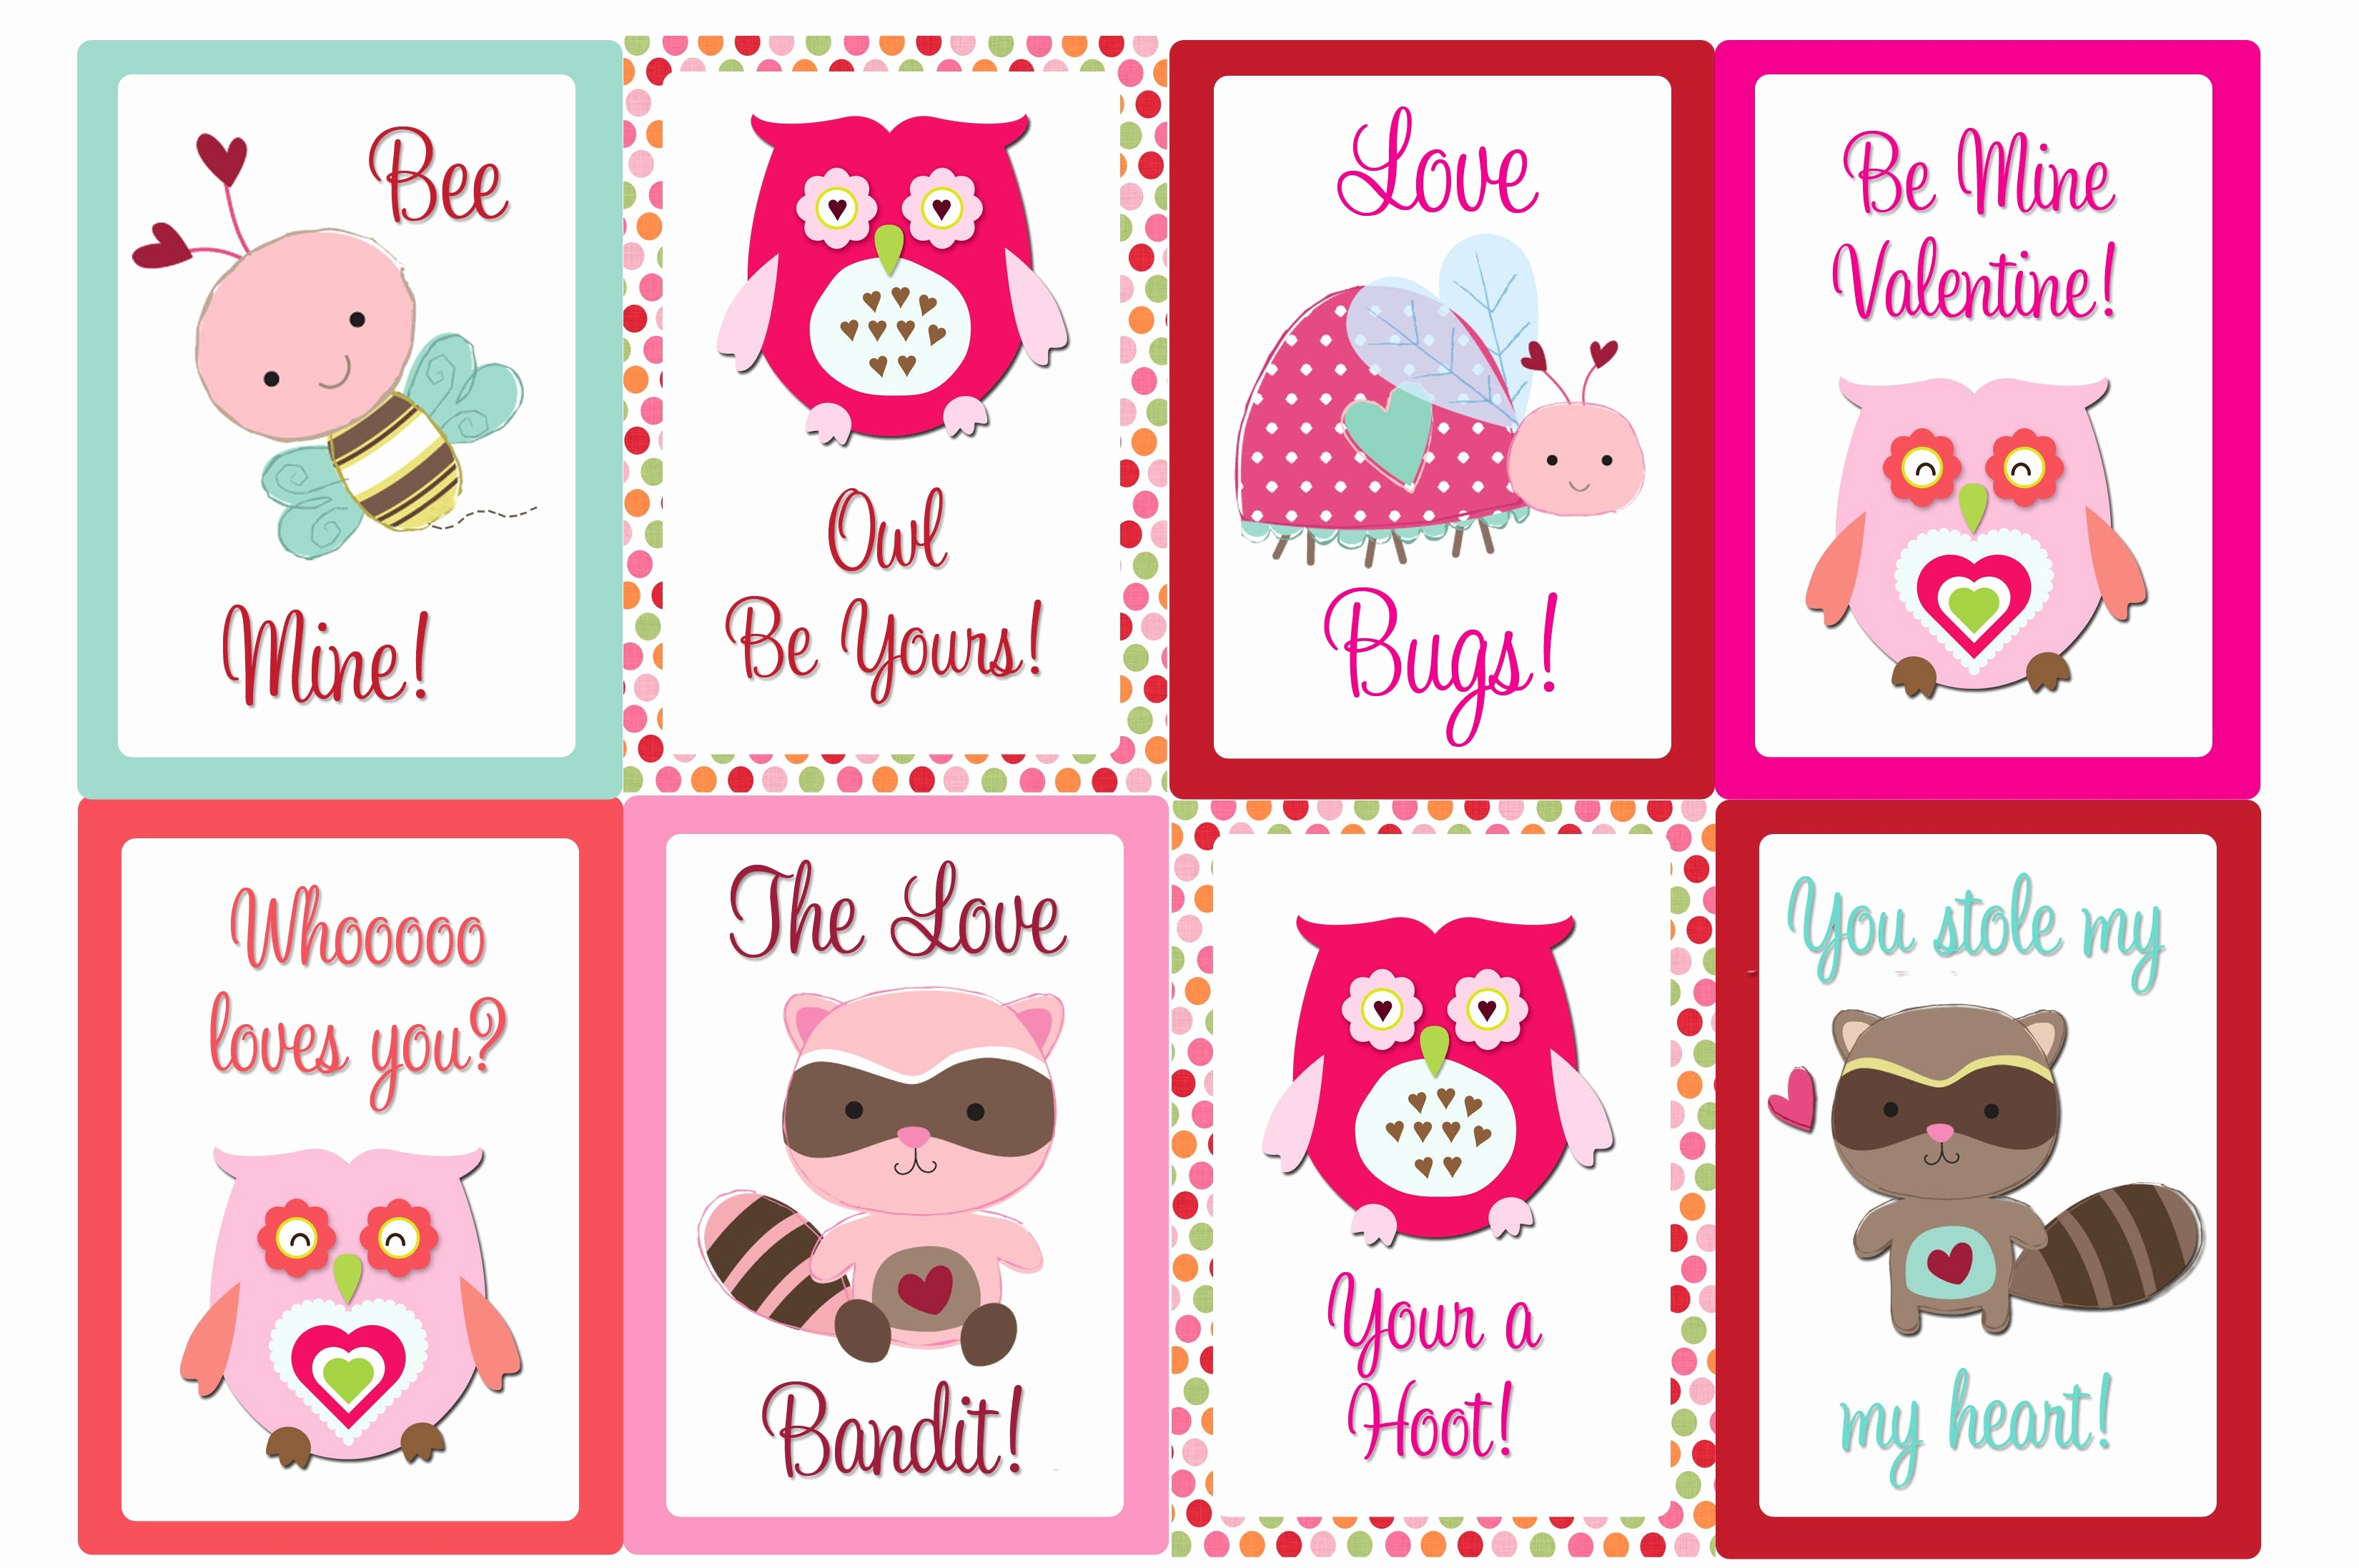 printable romantic birthday cards for her ; printable-romantic-birthday-cards-for-her-lovely-howling-diy-valentine-card-ideas-ptpa-to-fy-printable-valentine-of-printable-romantic-birthday-cards-for-her